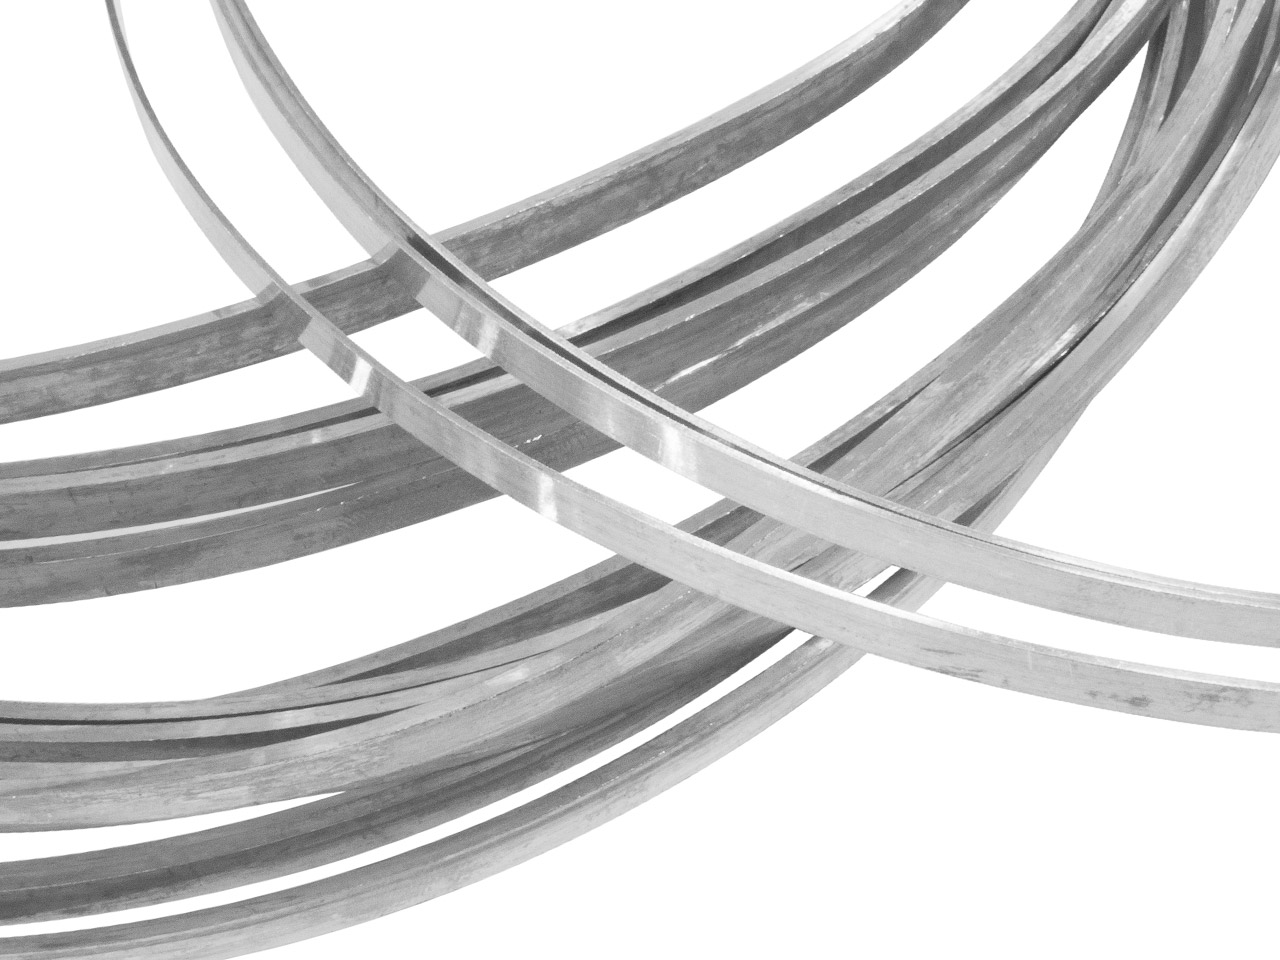 Sterling Silver Rectangular Wire   12.7mm X 3.2mm Fully Annealed